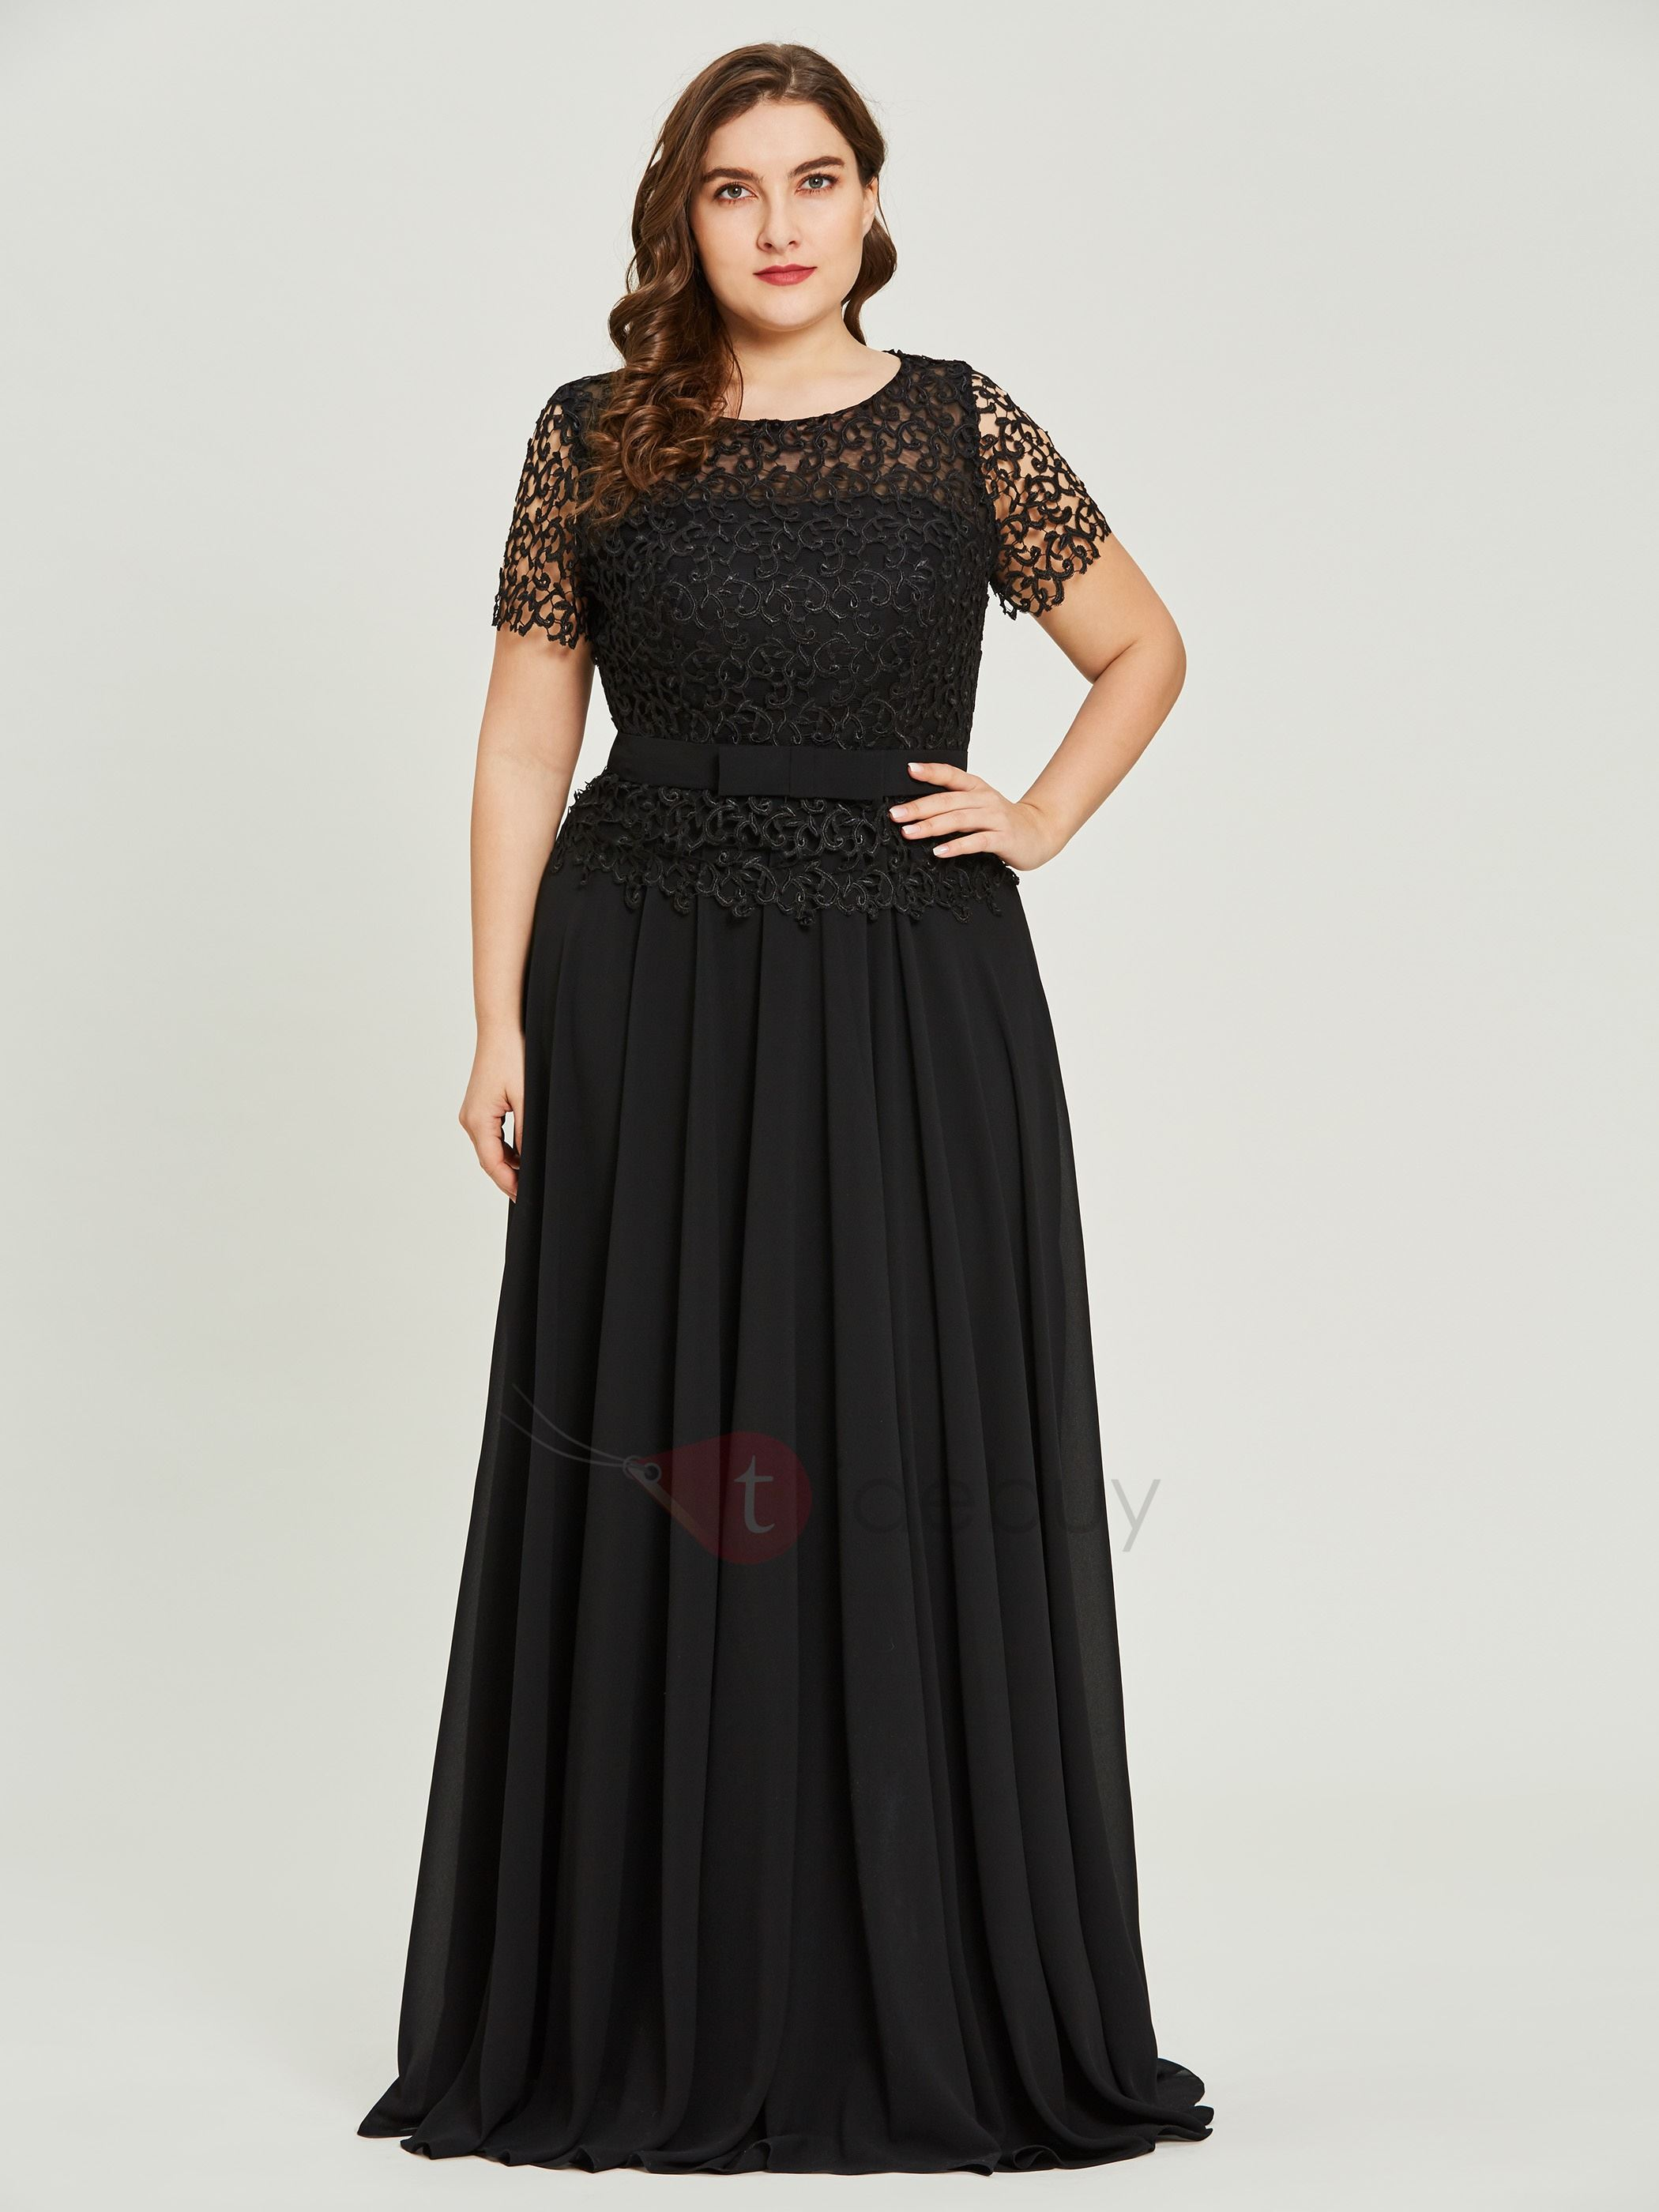 Scoop Neck Short Sleeves A Line Plus Size Prom Dress